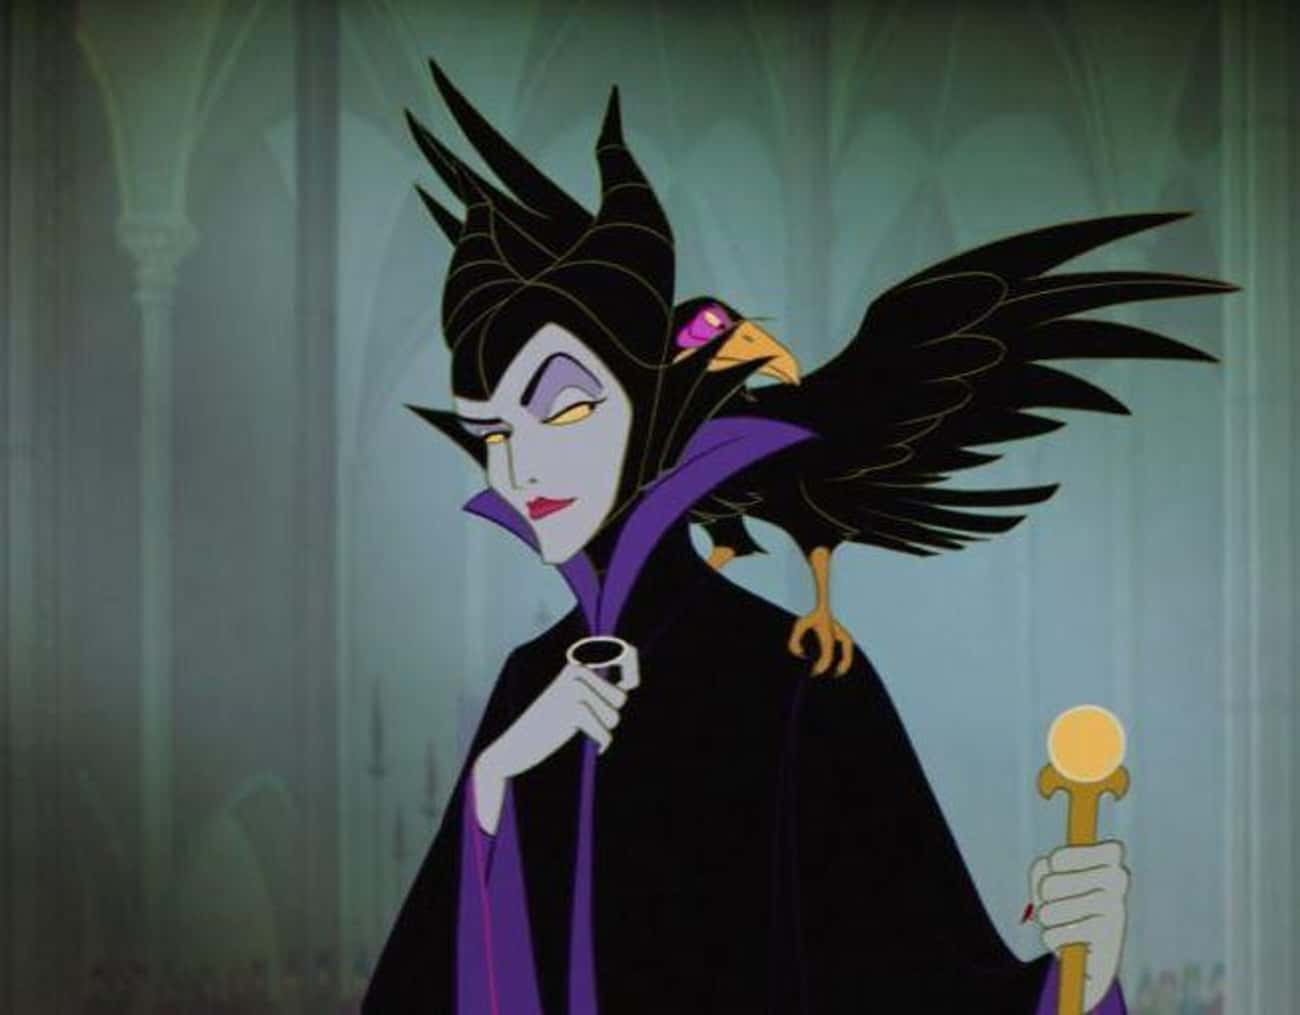 Maleficent, 'Sleeping Beauty' is listed (or ranked) 4 on the list The Most On-The-Nose Character Names In Movie History